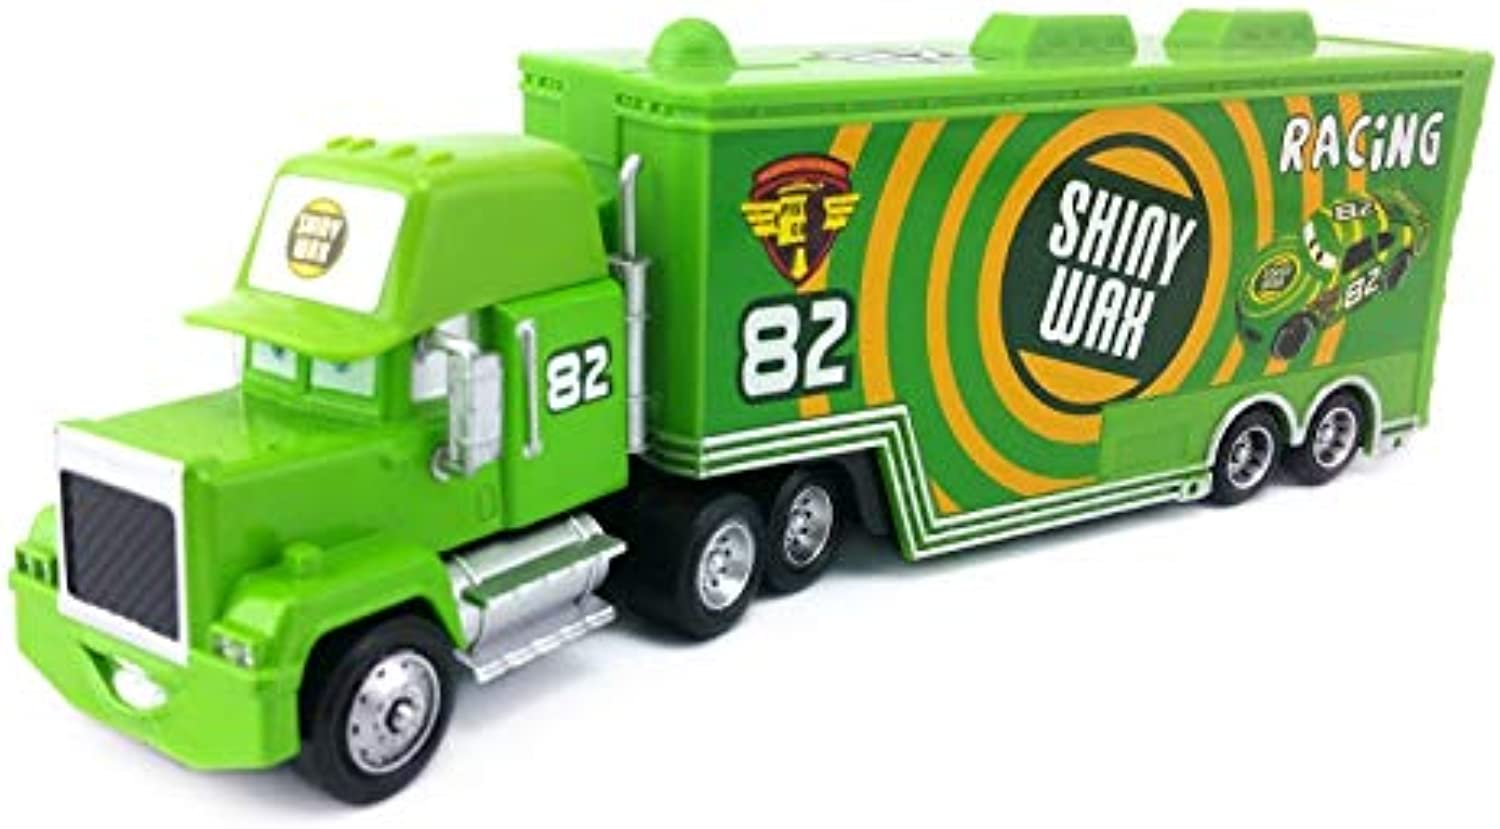 Disney Disney Pixar Cars Mack Uncle No.82 Shiny Wax Racer's Truck Diecast Toy Car Loose 1 55 in Stock &